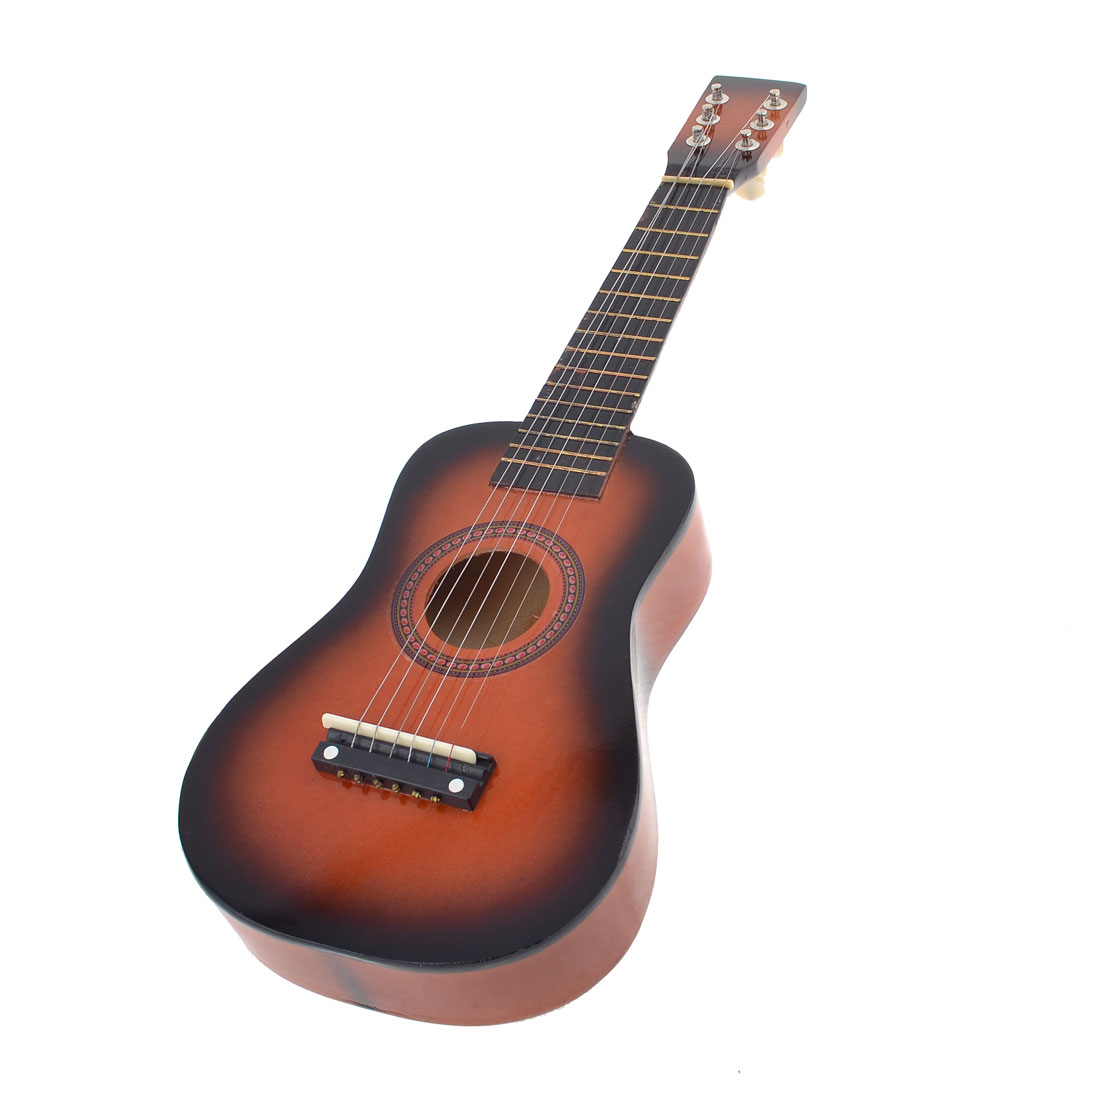 "Red Black Mini Six Strings Wooden Acoustic Ukulele Guitar Toy 23"" for Kid"